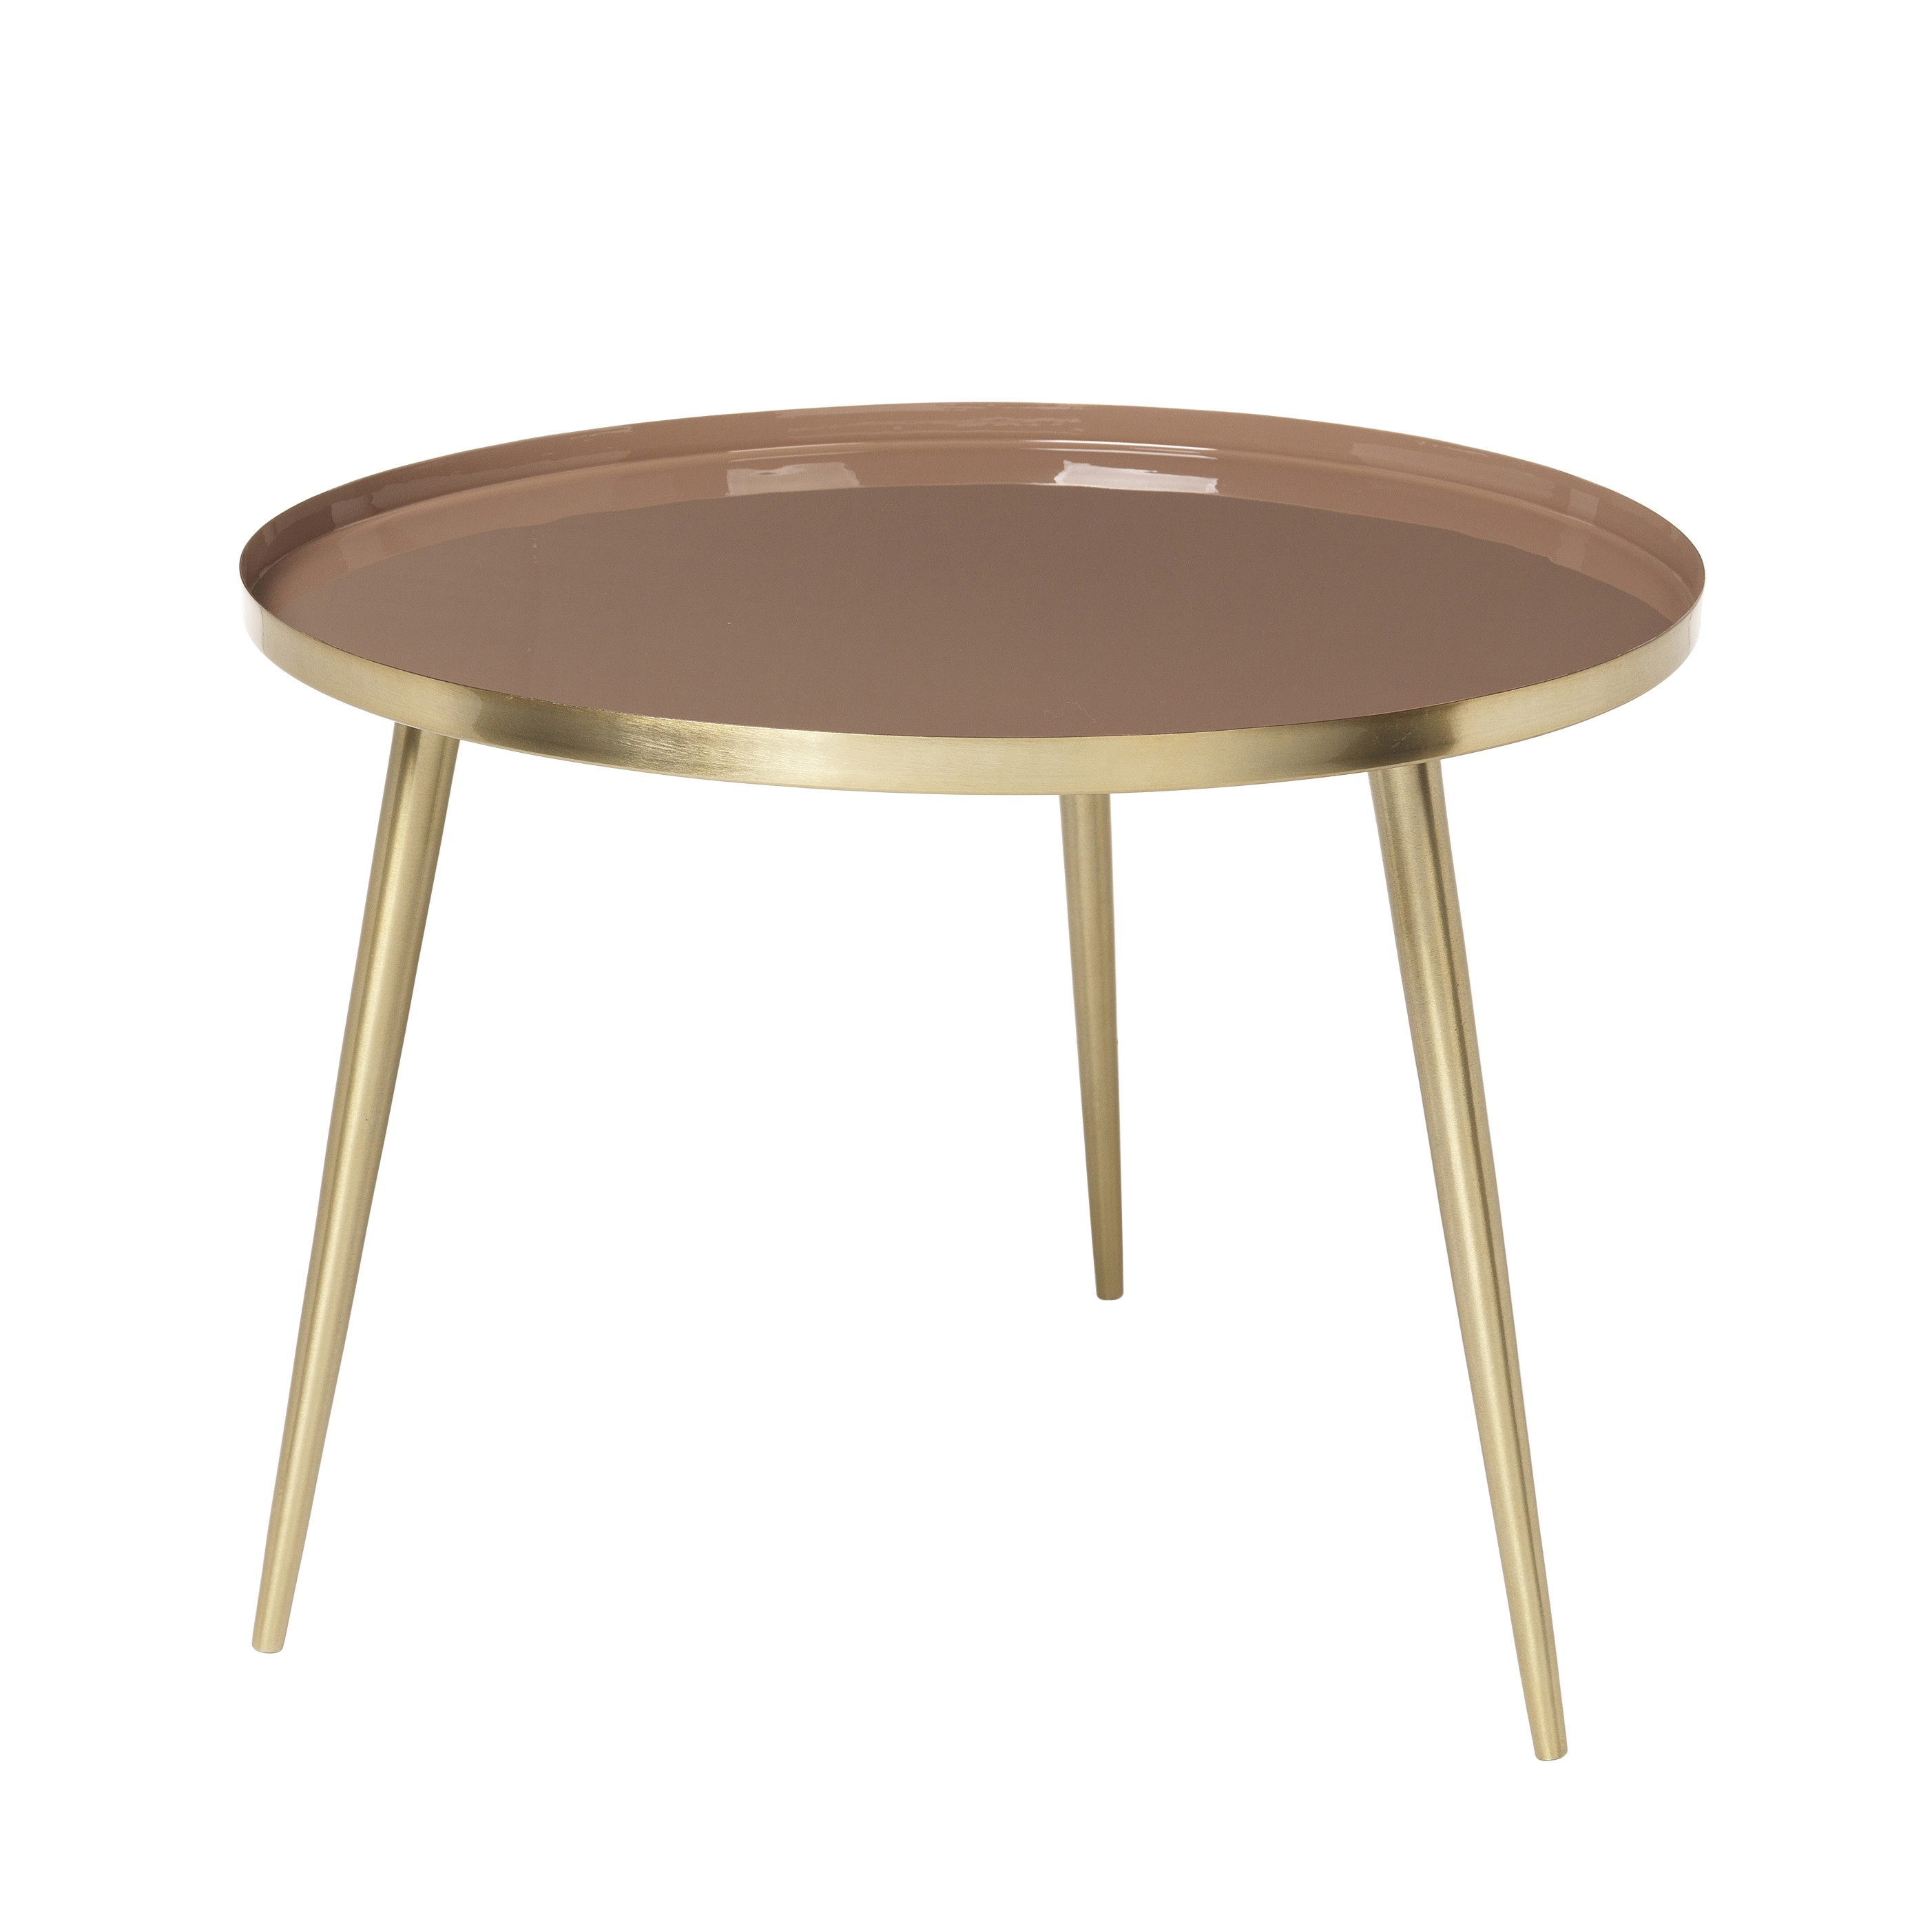 the bowery table brass tan sizes coffee side tables accent painted cabinets mid century replica furniture gold setting corner accents glass top black acrylic matching bedside and